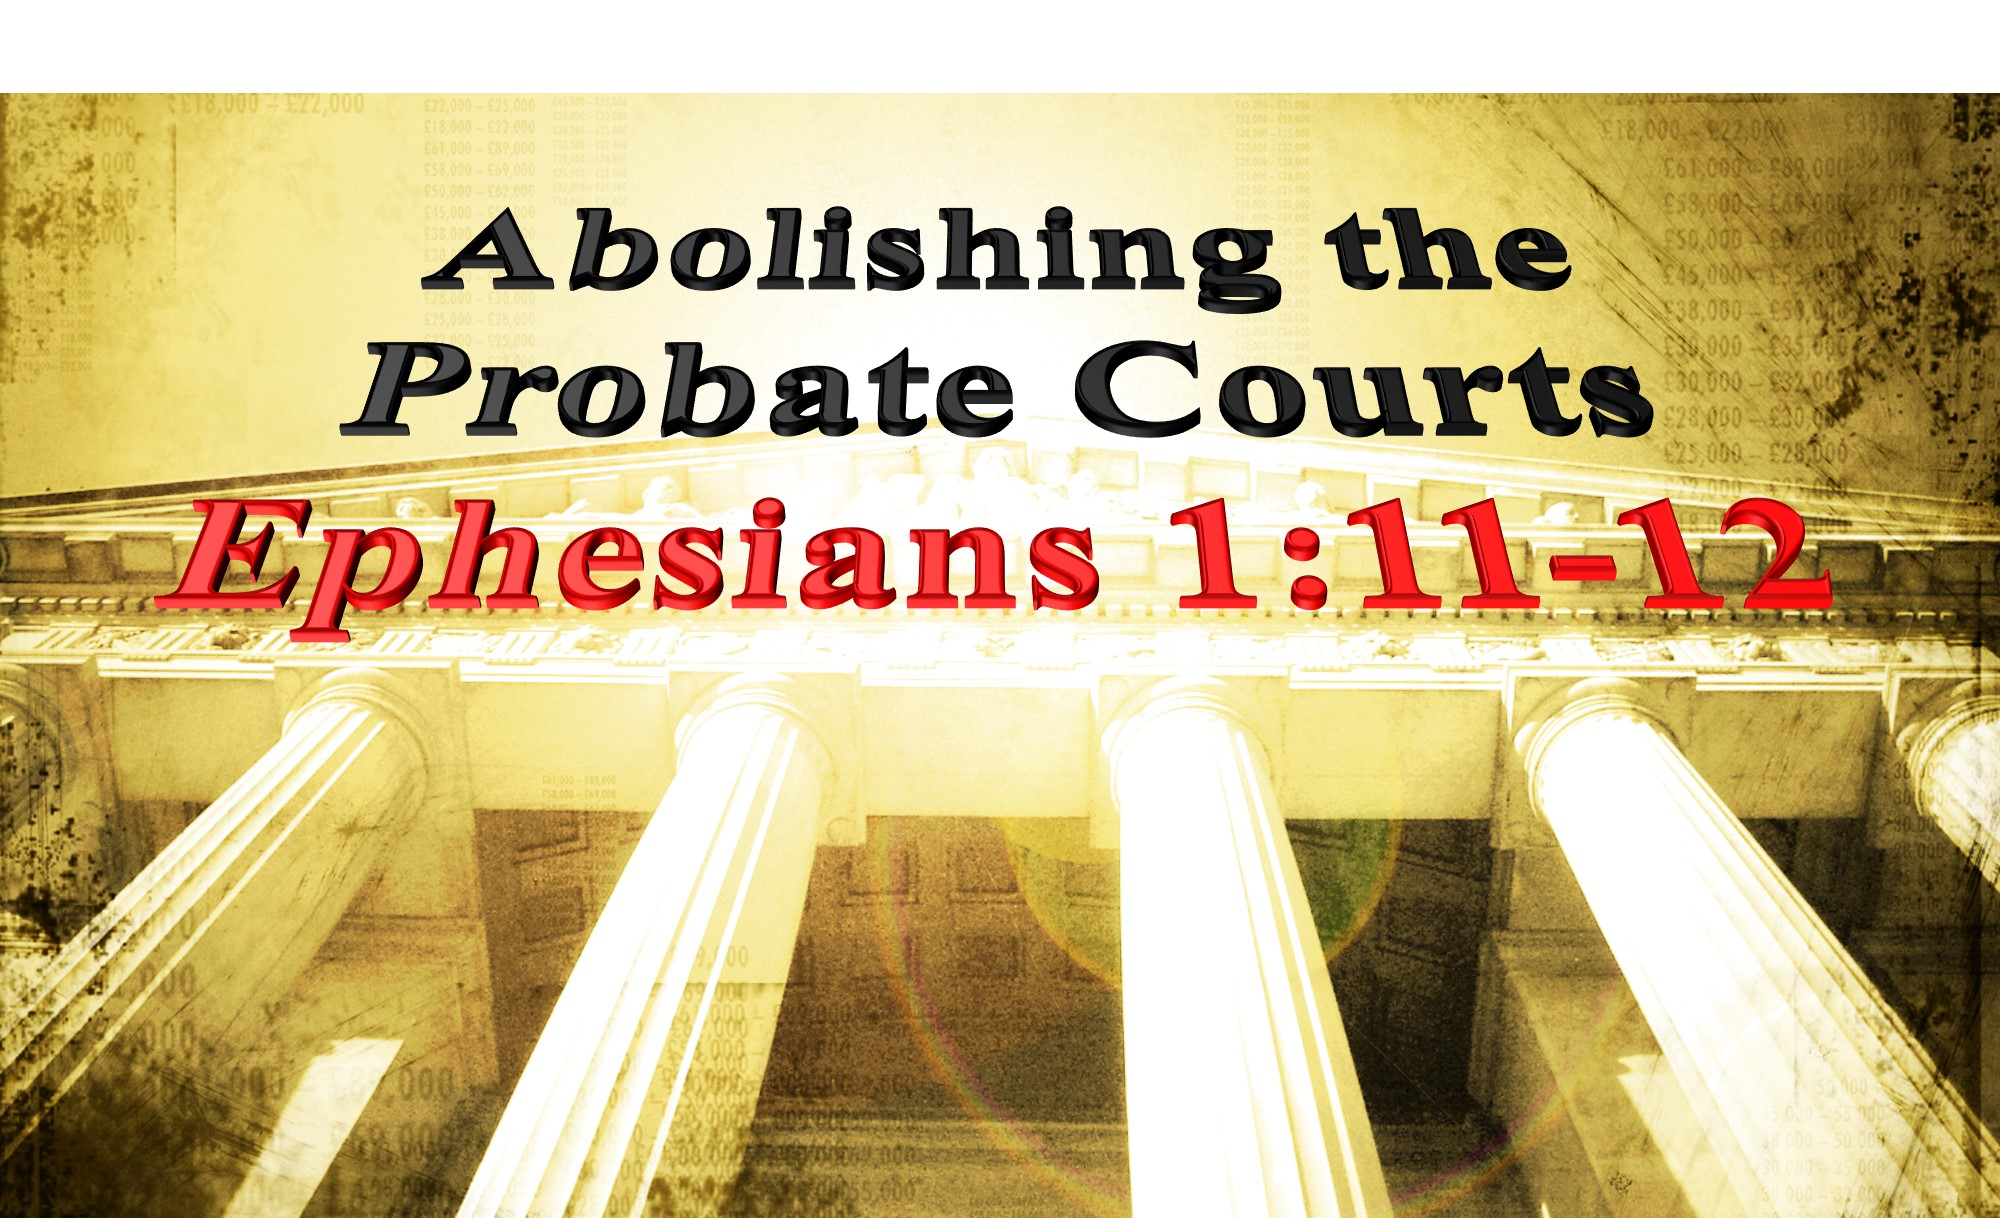 Abolishing the Probate Courts